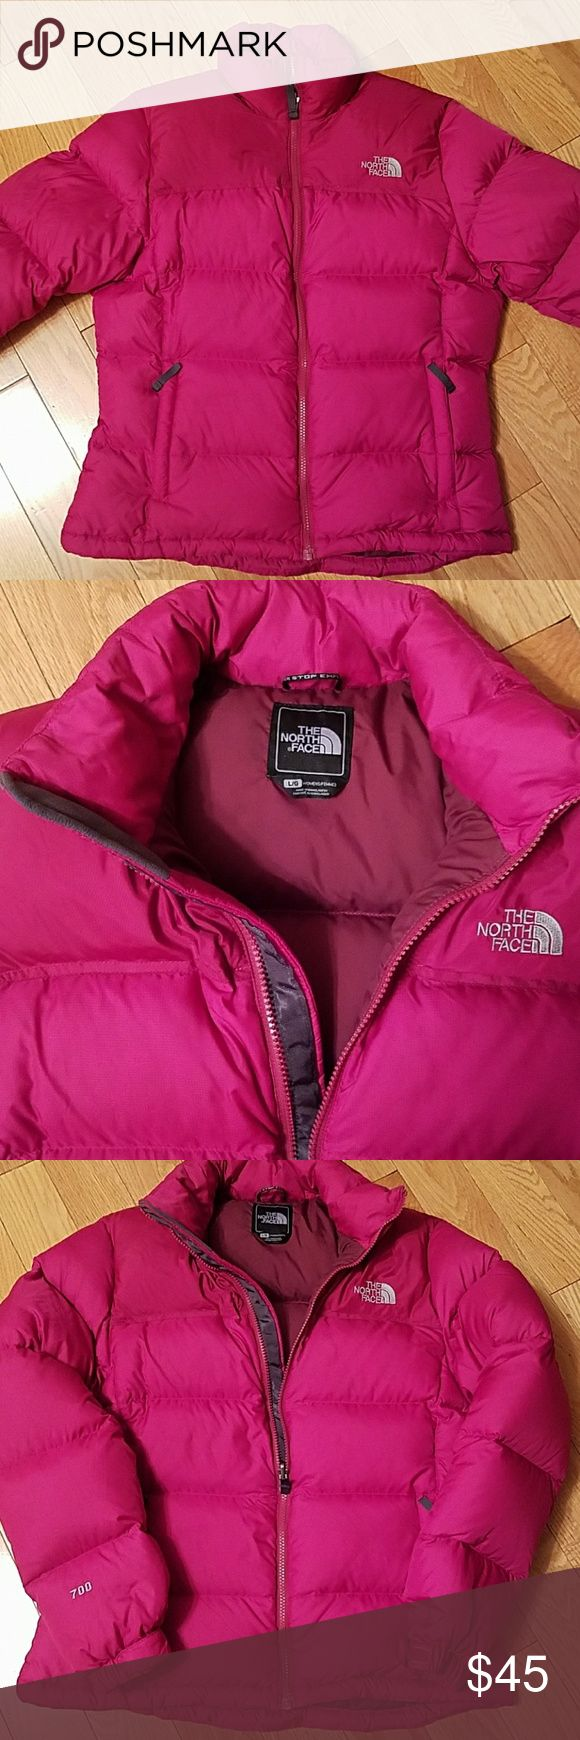 The North Face 700 Ladies Jacket L Gently Used The North Face Ladies Jacket L The North Face Jackets & Coats Puffers